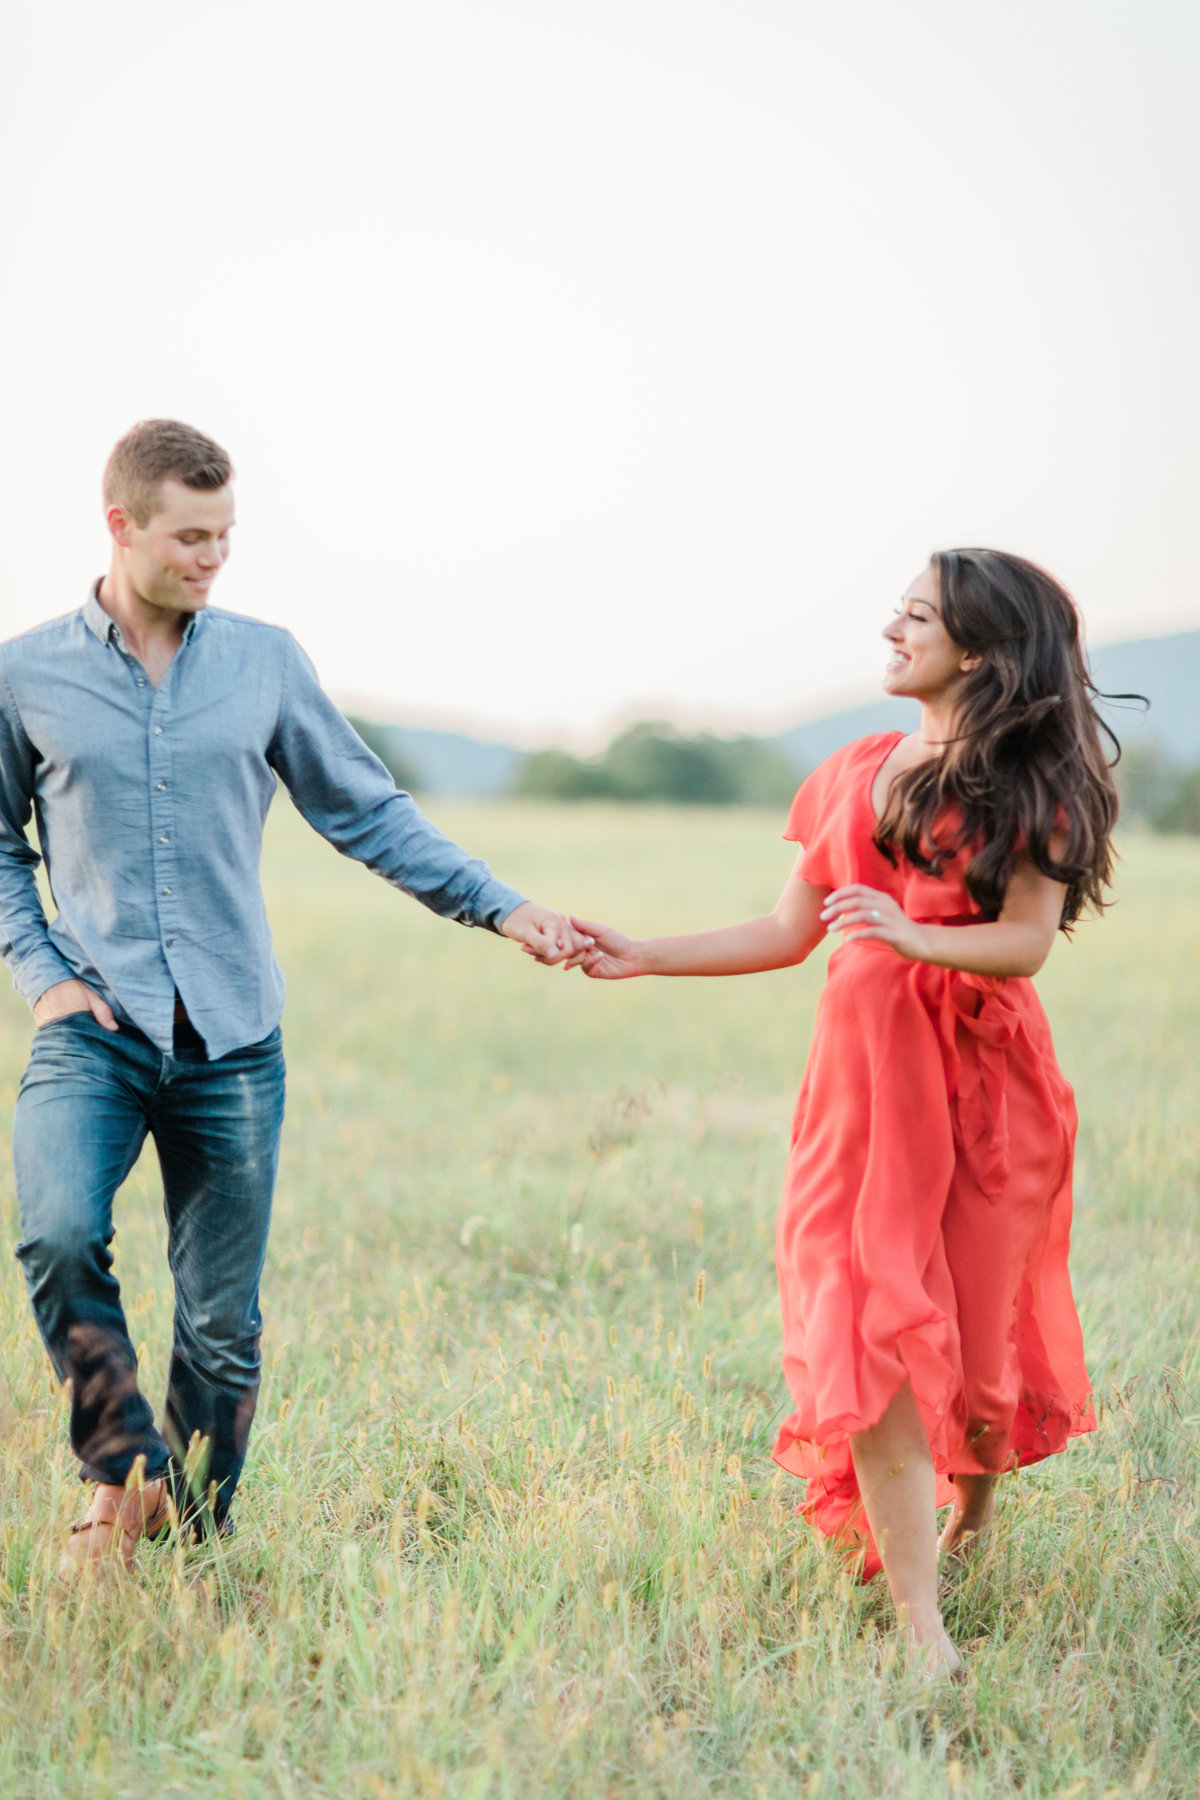 SkyMeadowsPark_Virginia_Engagement_Session_AngelikaJohnsPhotography-0736